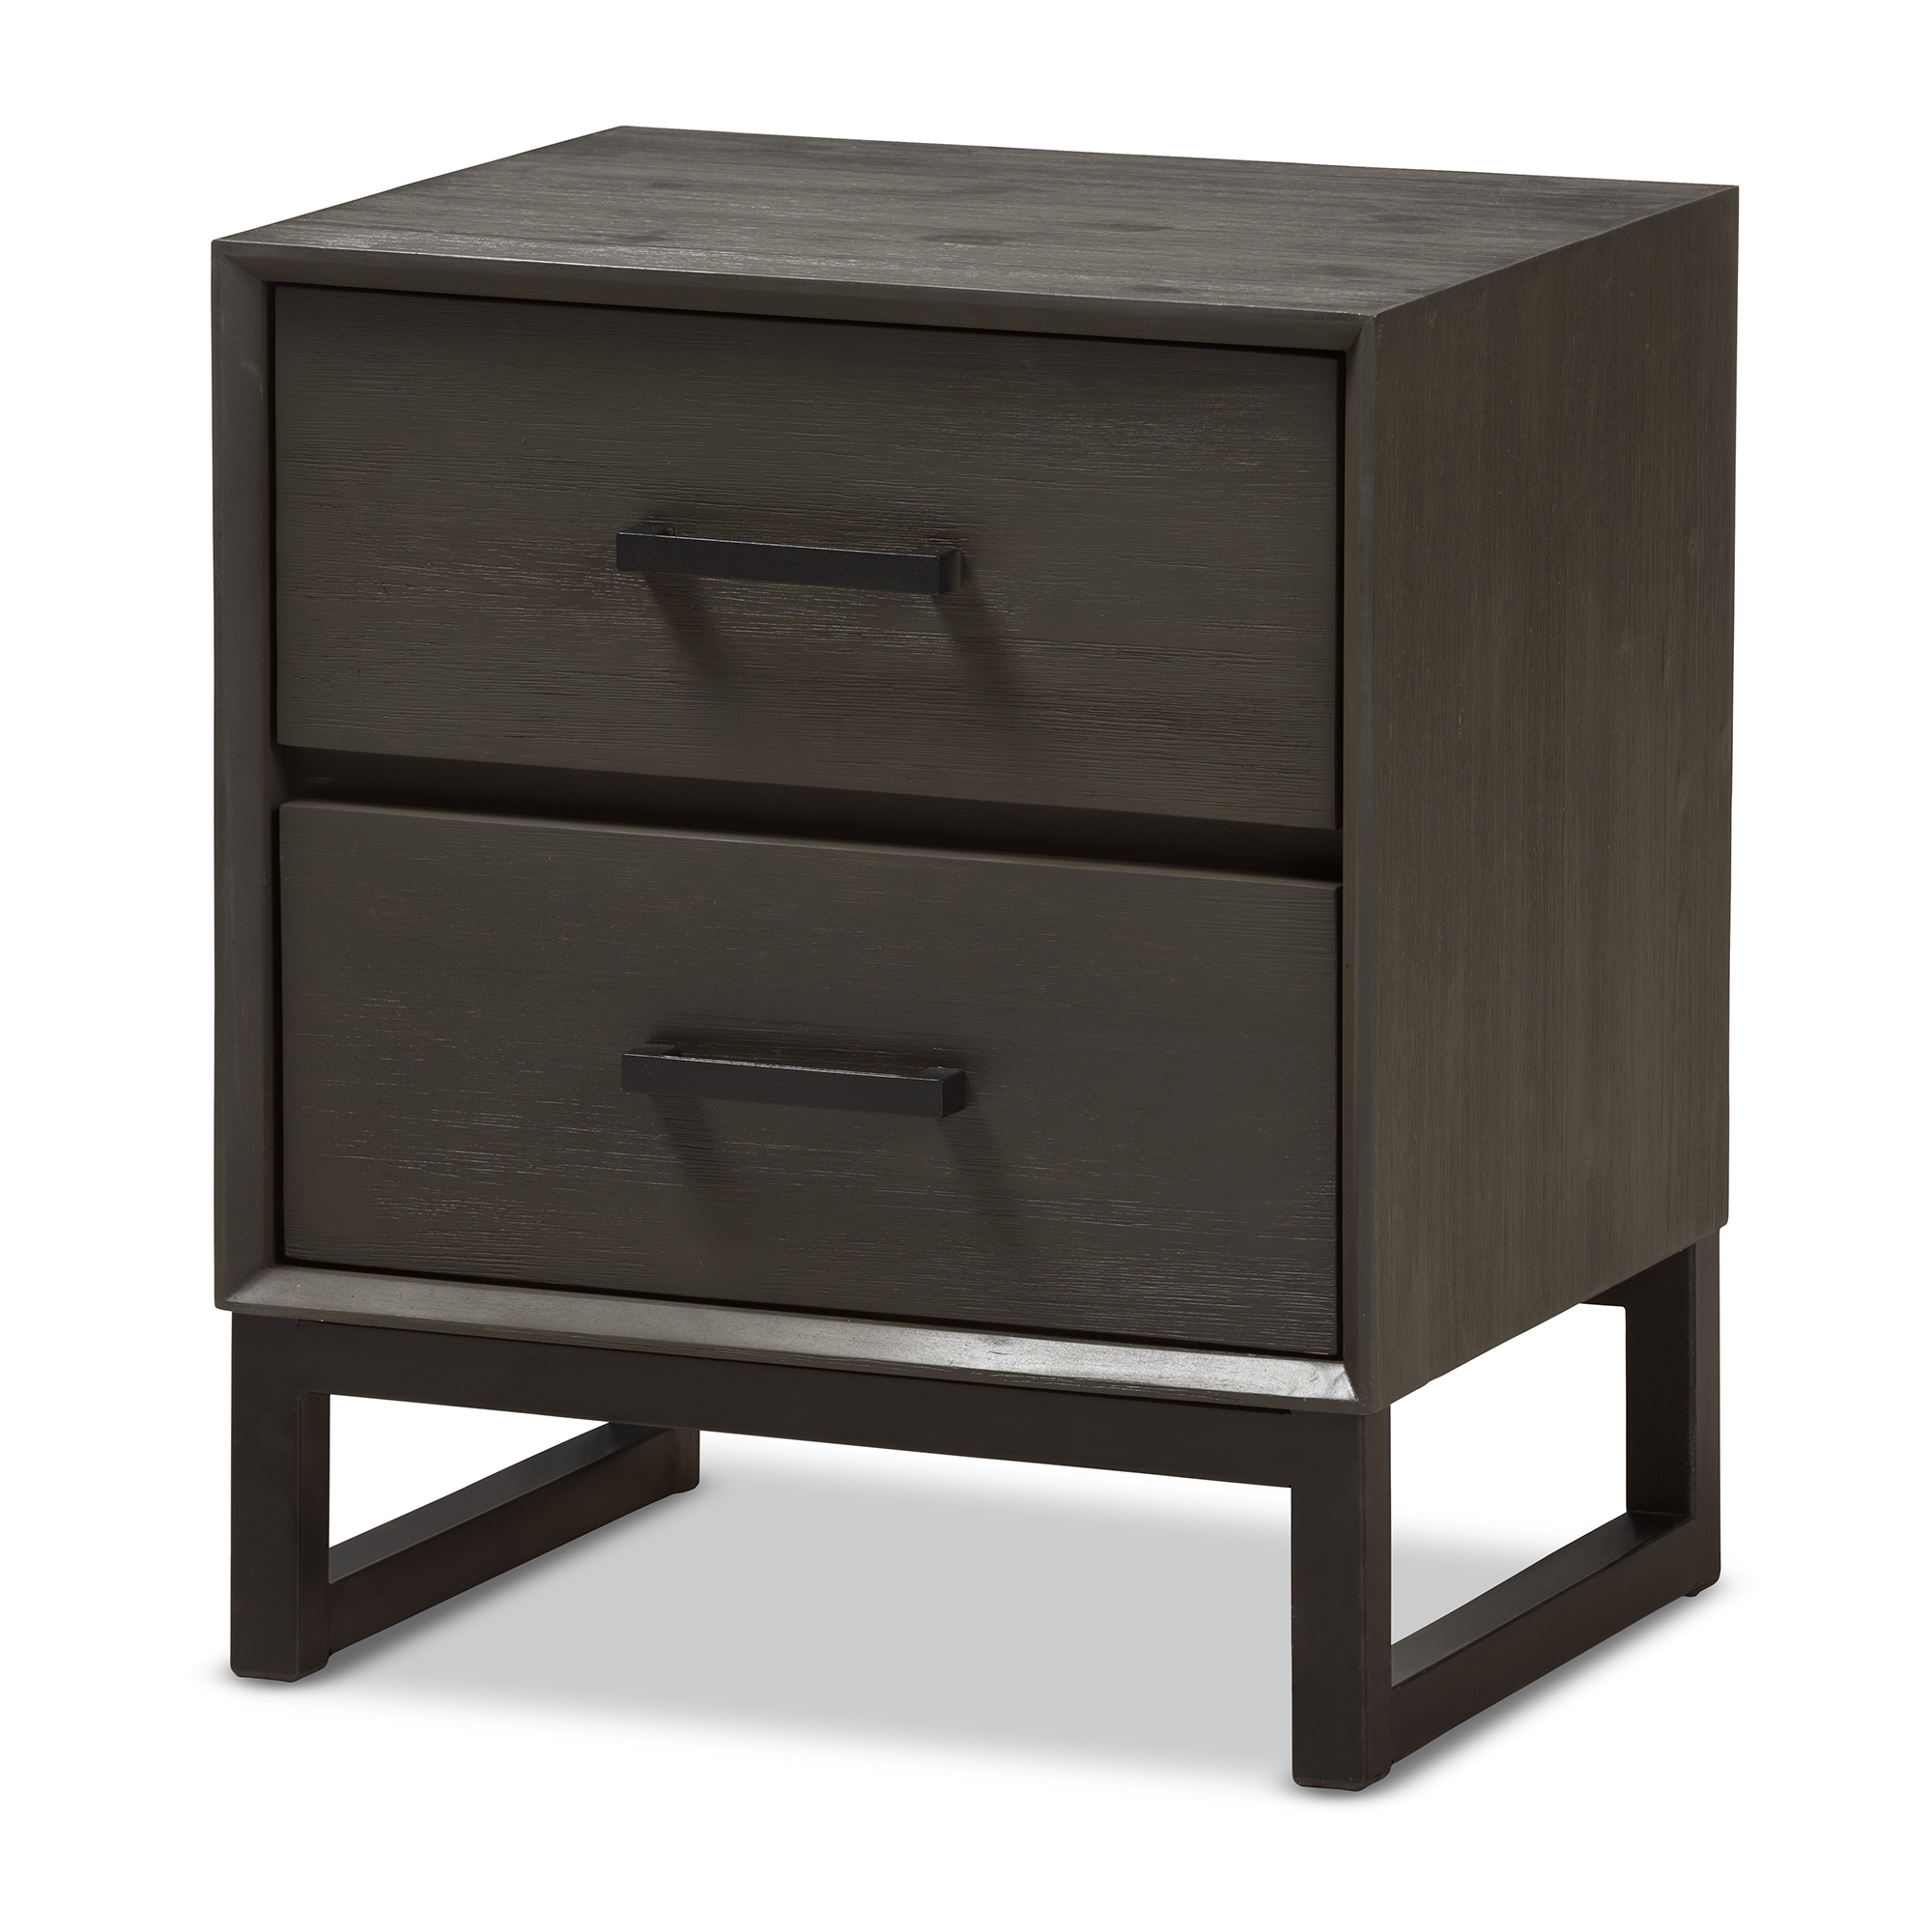 Baxton Studio Parris Rustic Grey Wood And Black Metal 2 Drawer Nightstand